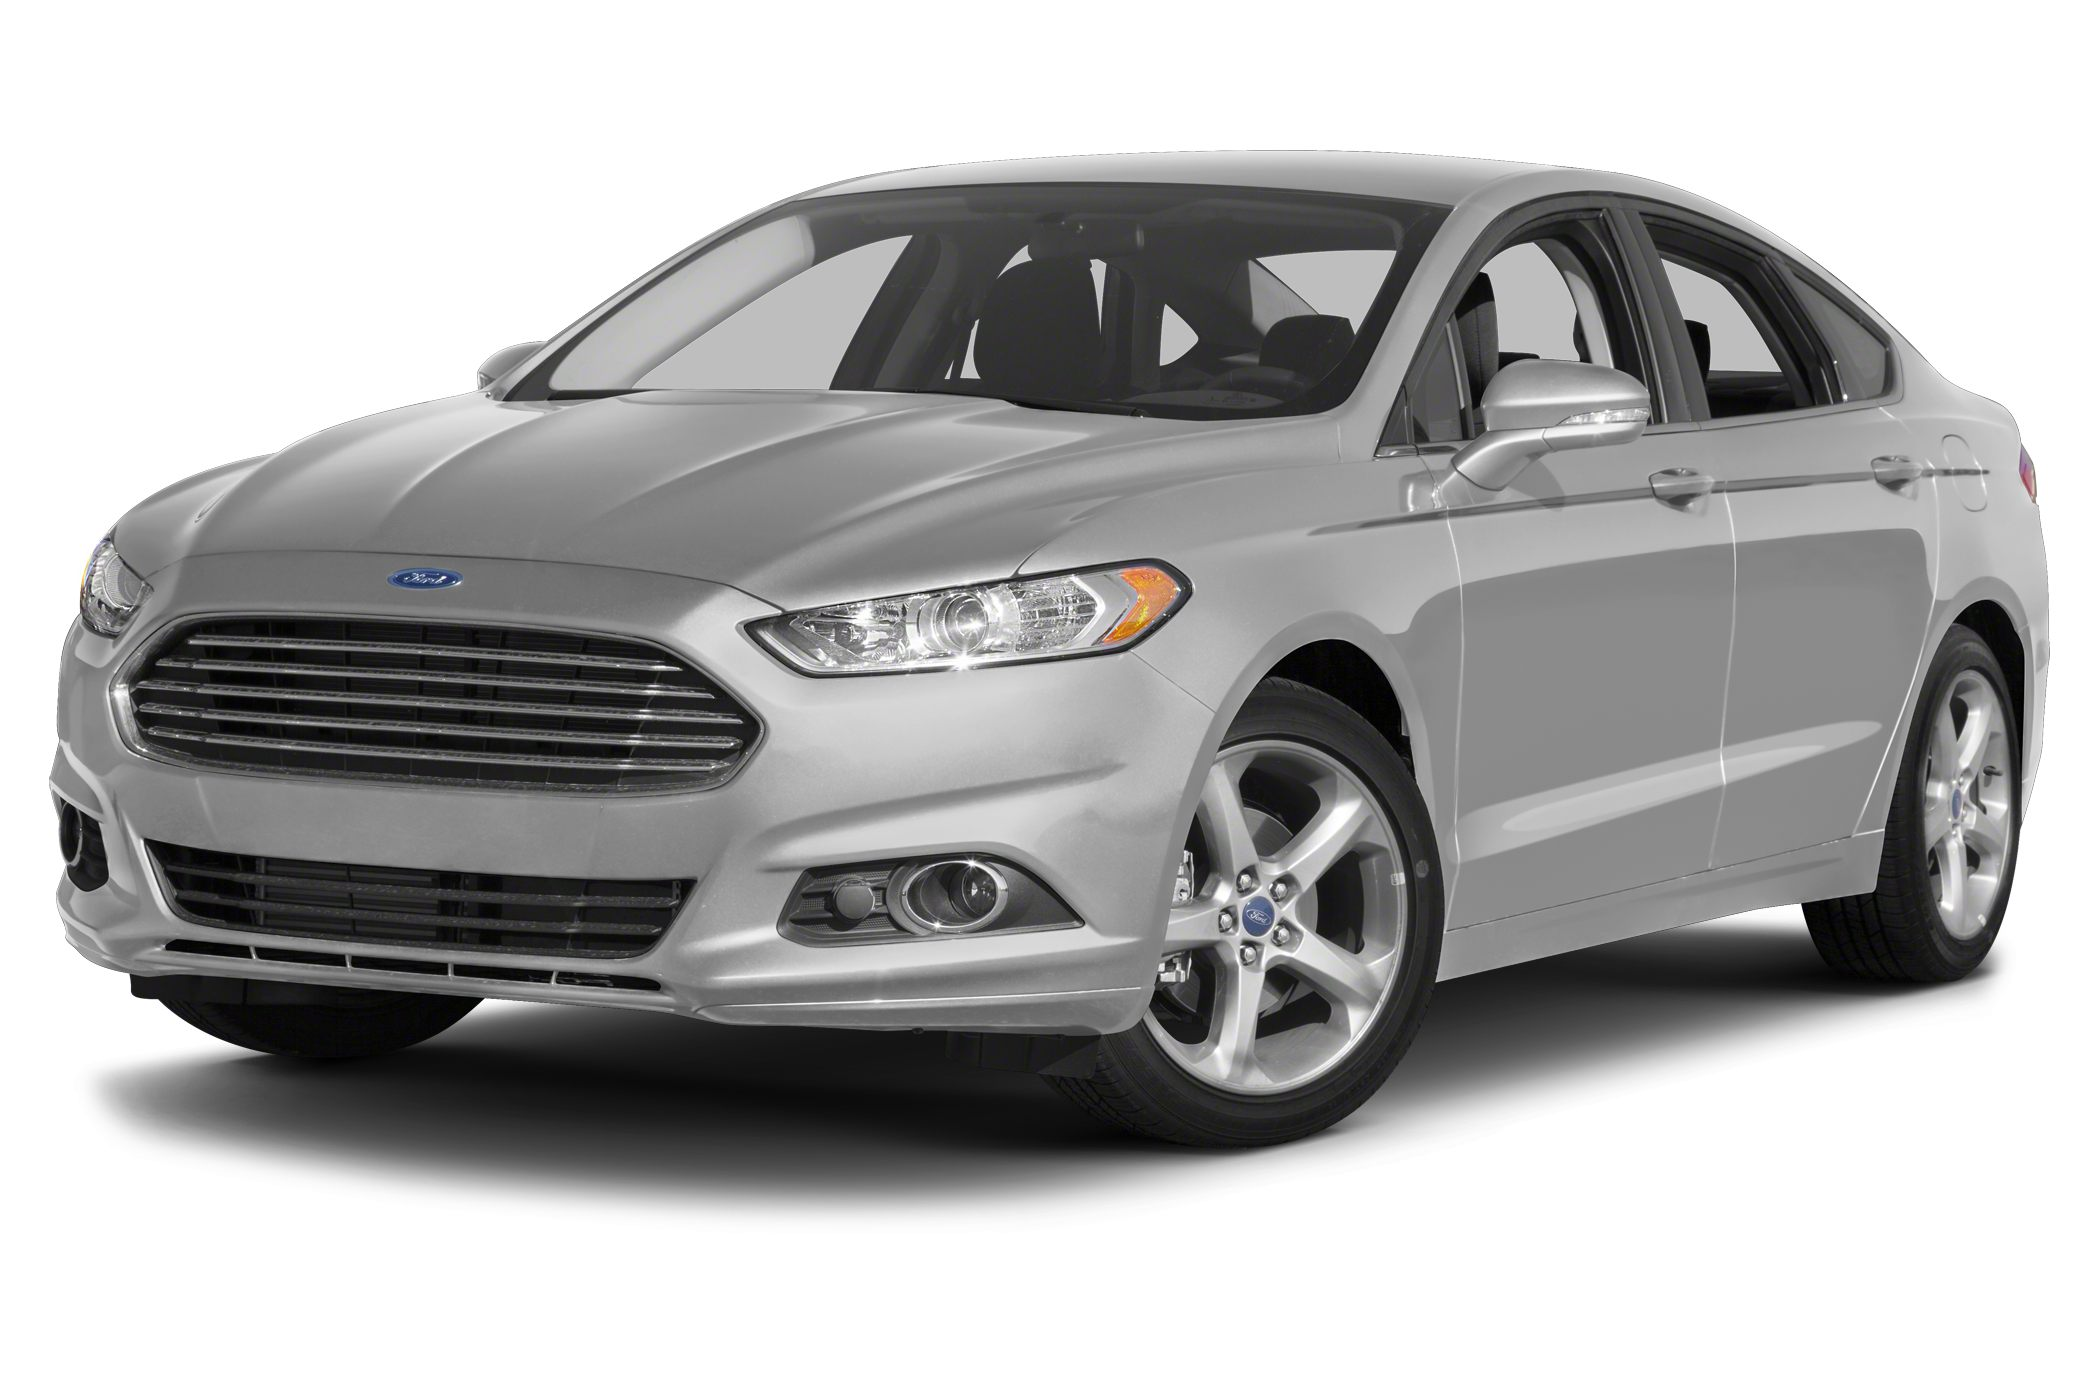 2013 Ford Fusion SE Sedan for sale in Statesville for $18,880 with 22,701 miles